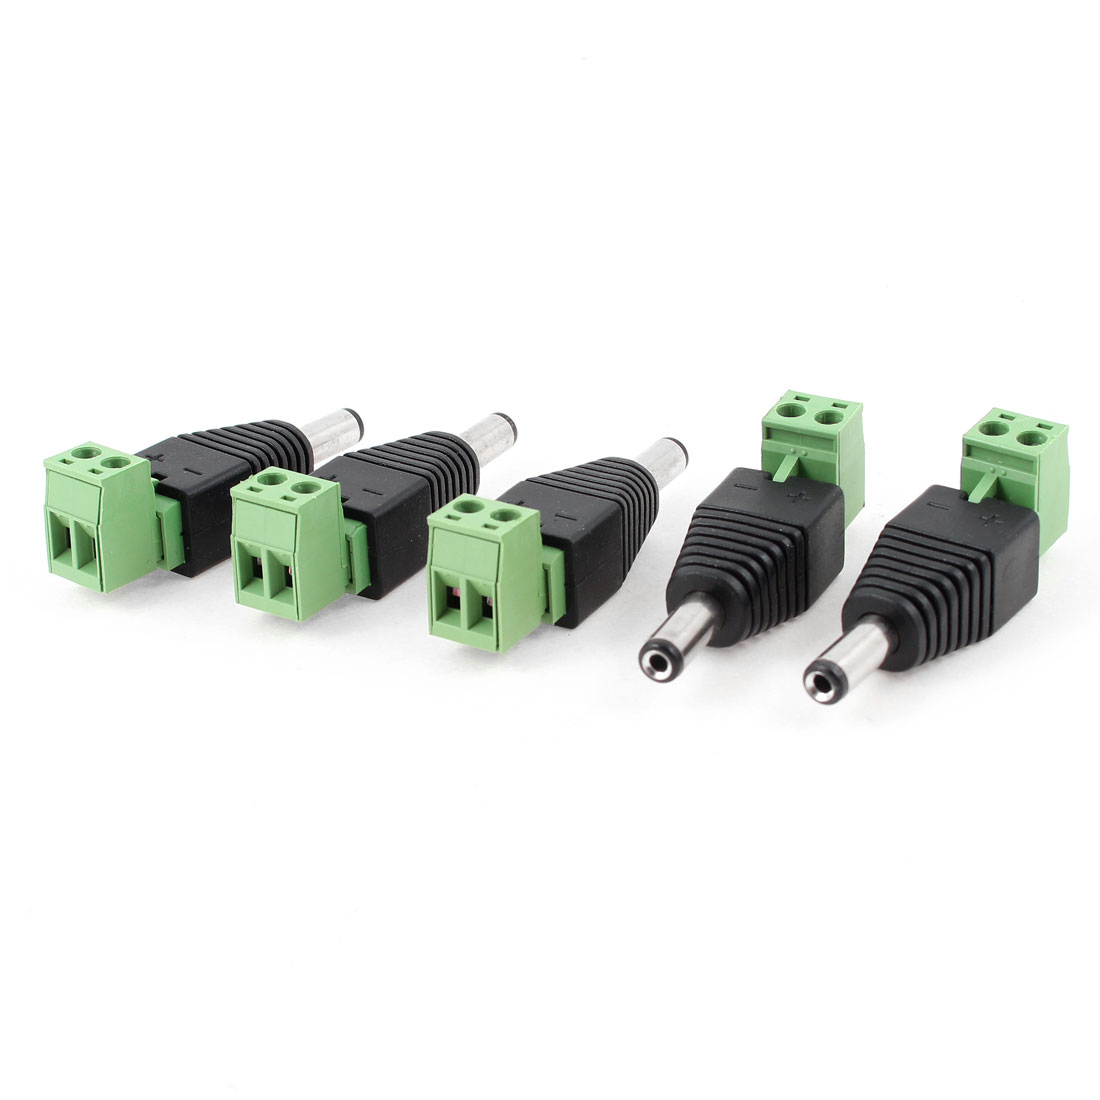 5 PCS Male 2.1x5.5mm DC Power Jack Adapter Plug Connector CCTV